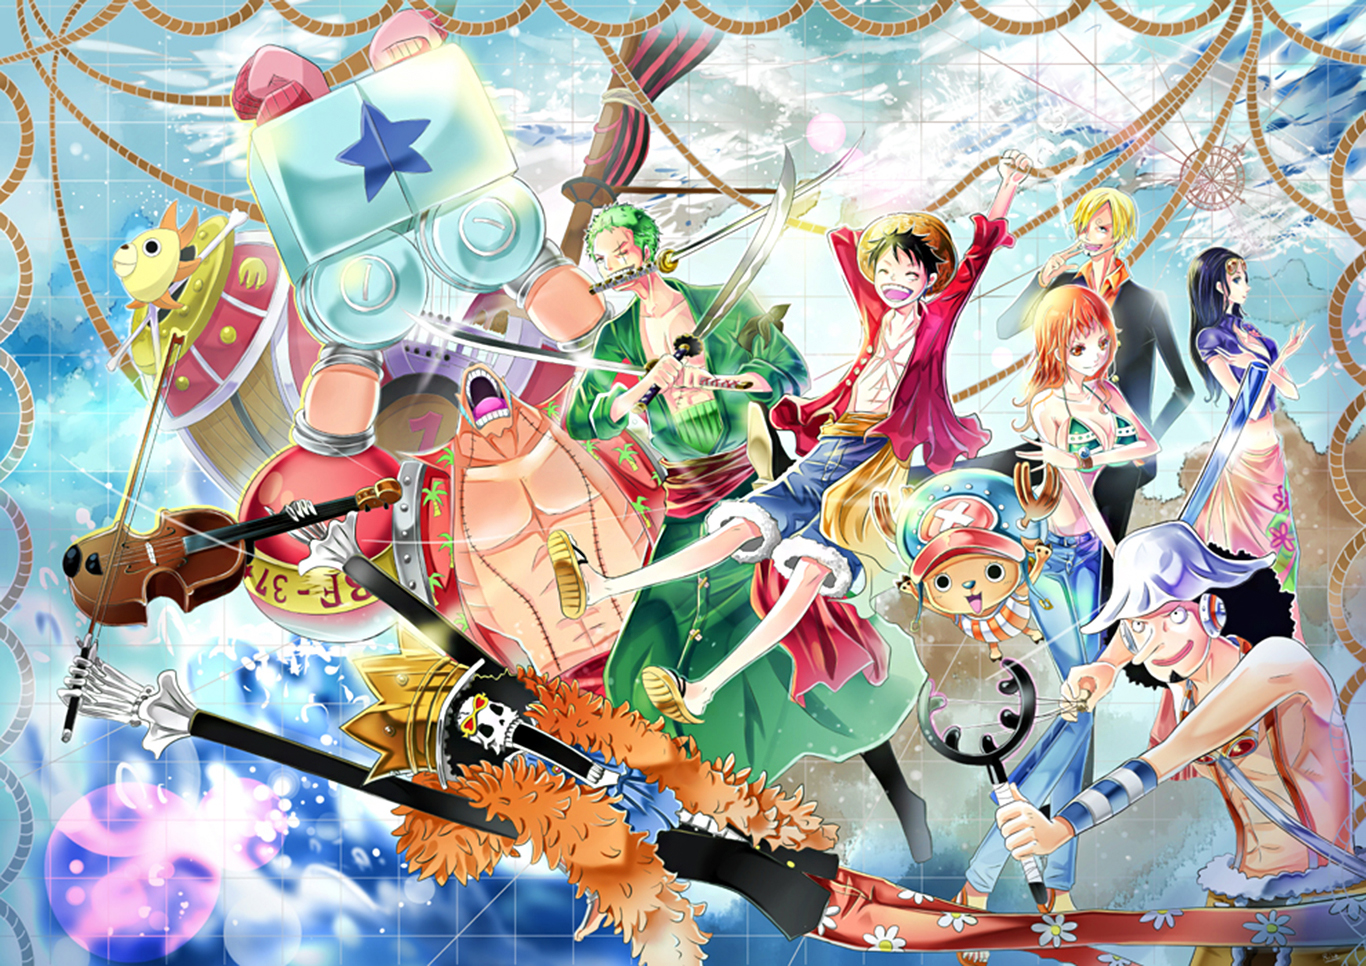 Anime Koi Fish Girl Wallpaper One Piece Wallpaper And Background Image 1366x966 Id